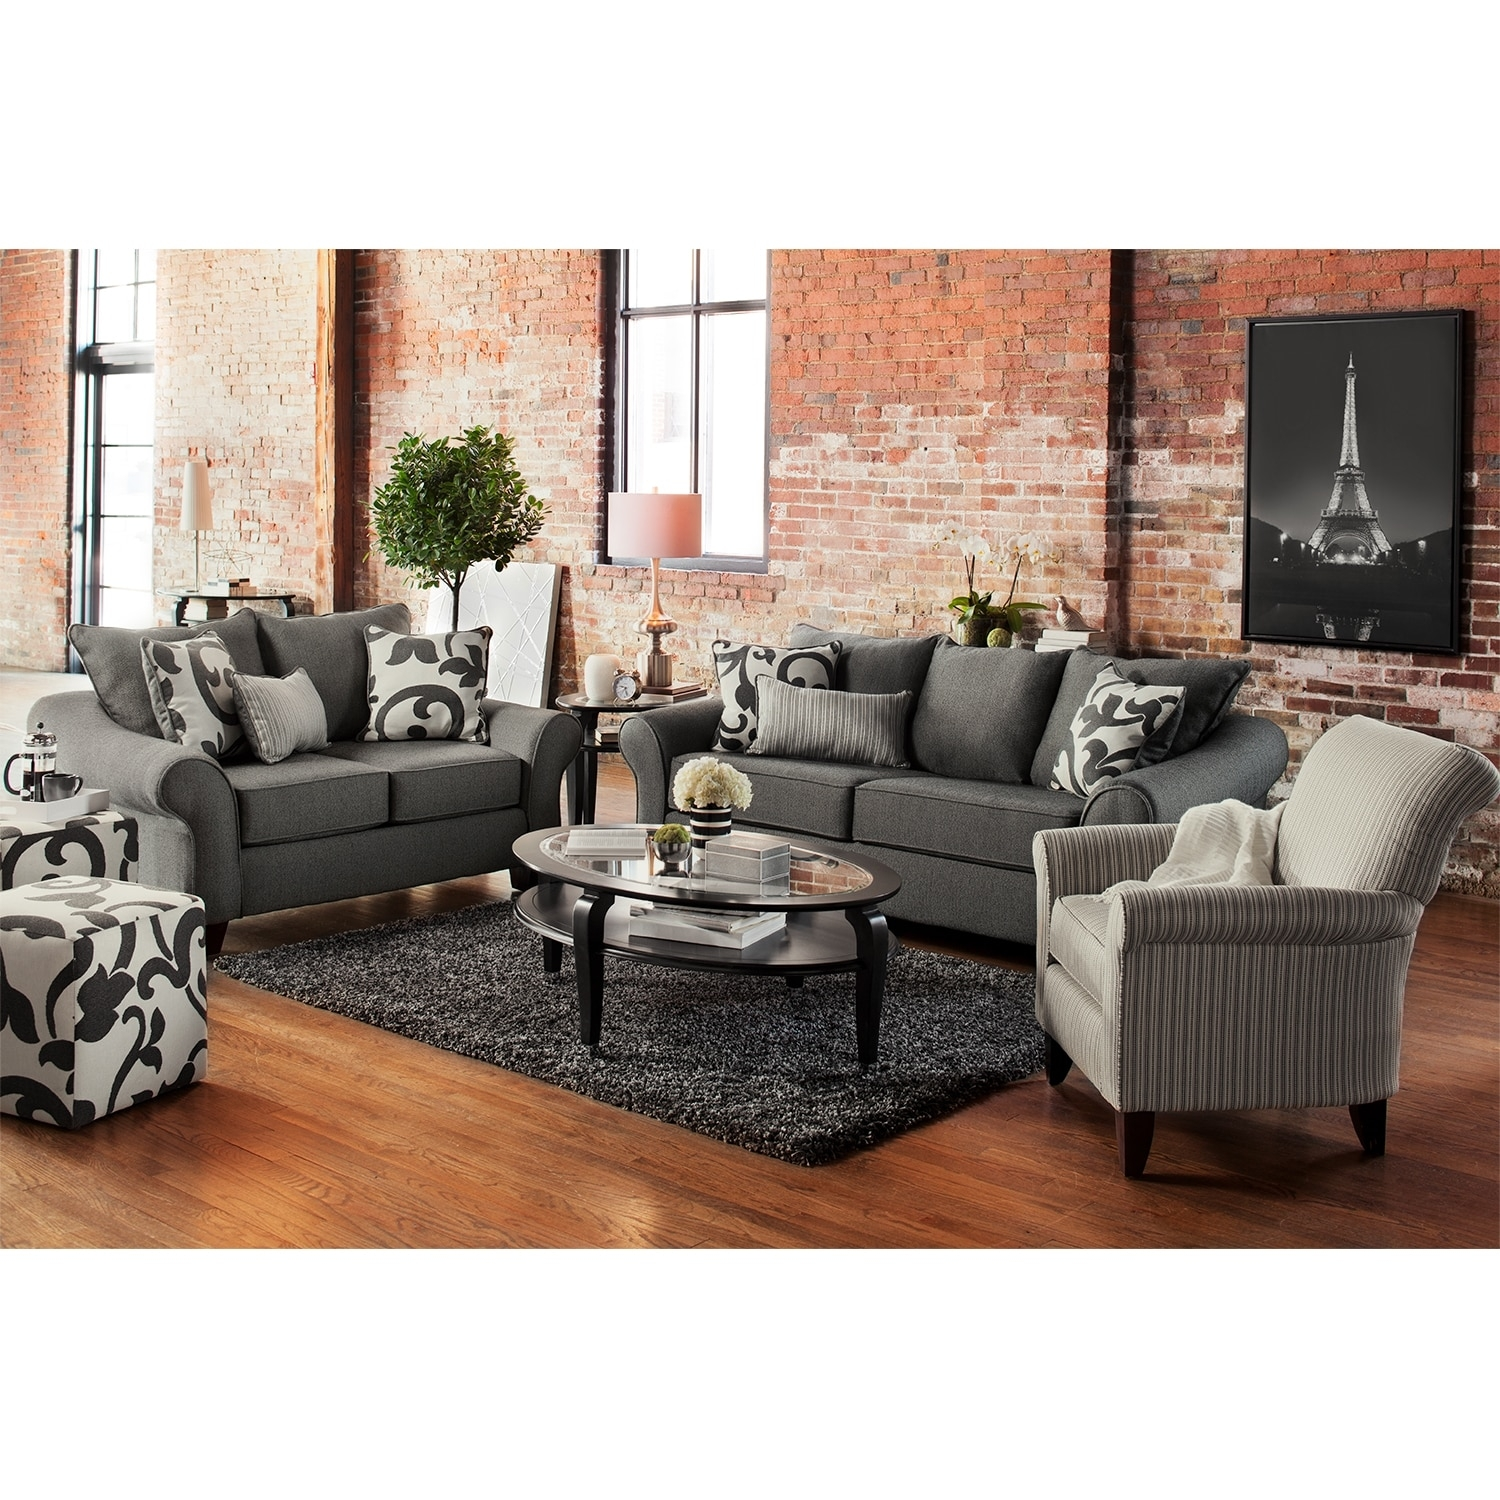 Colette Sofa And Accent Chair Set Gray Value City Furniture In Sofa And Accent Chair Set (Image 4 of 15)